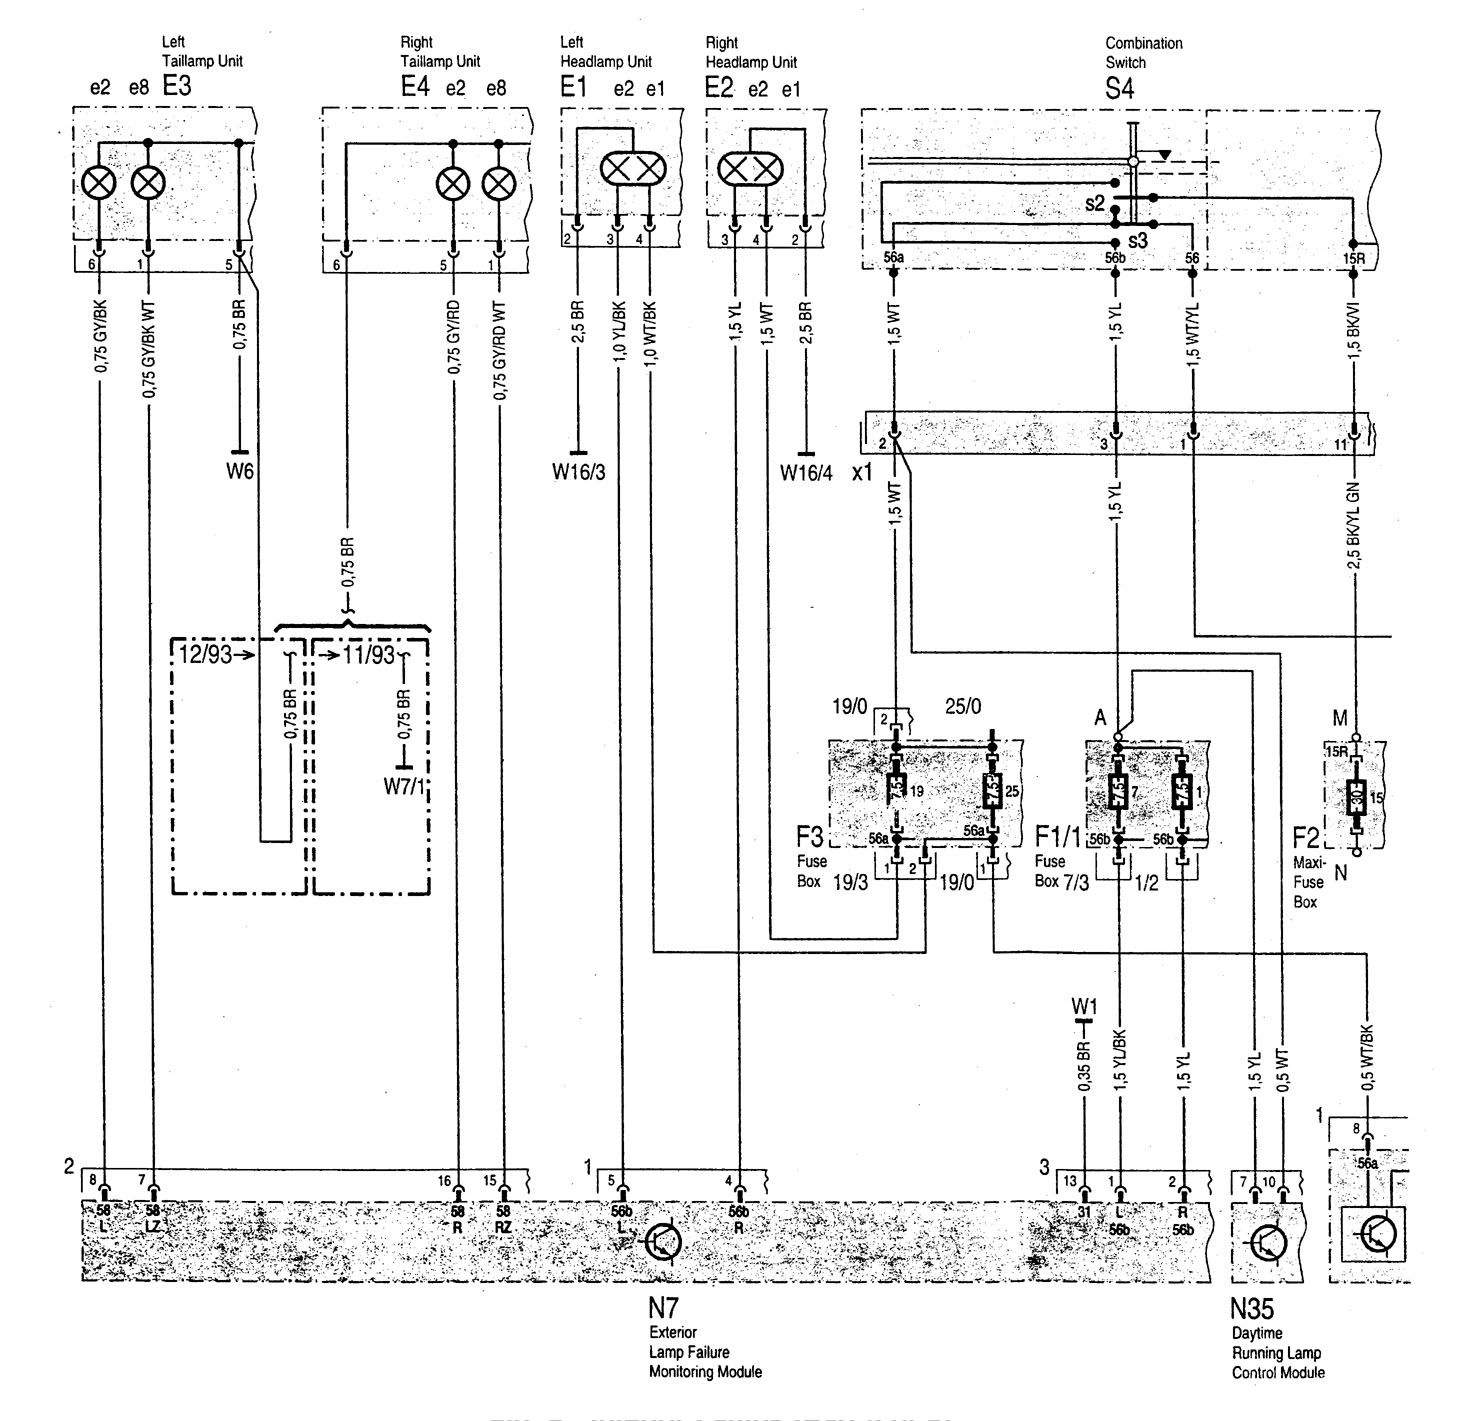 1995 mercedes sl500 wiring diagram 2007 kenworth radio benz c280 1994 1997 diagrams